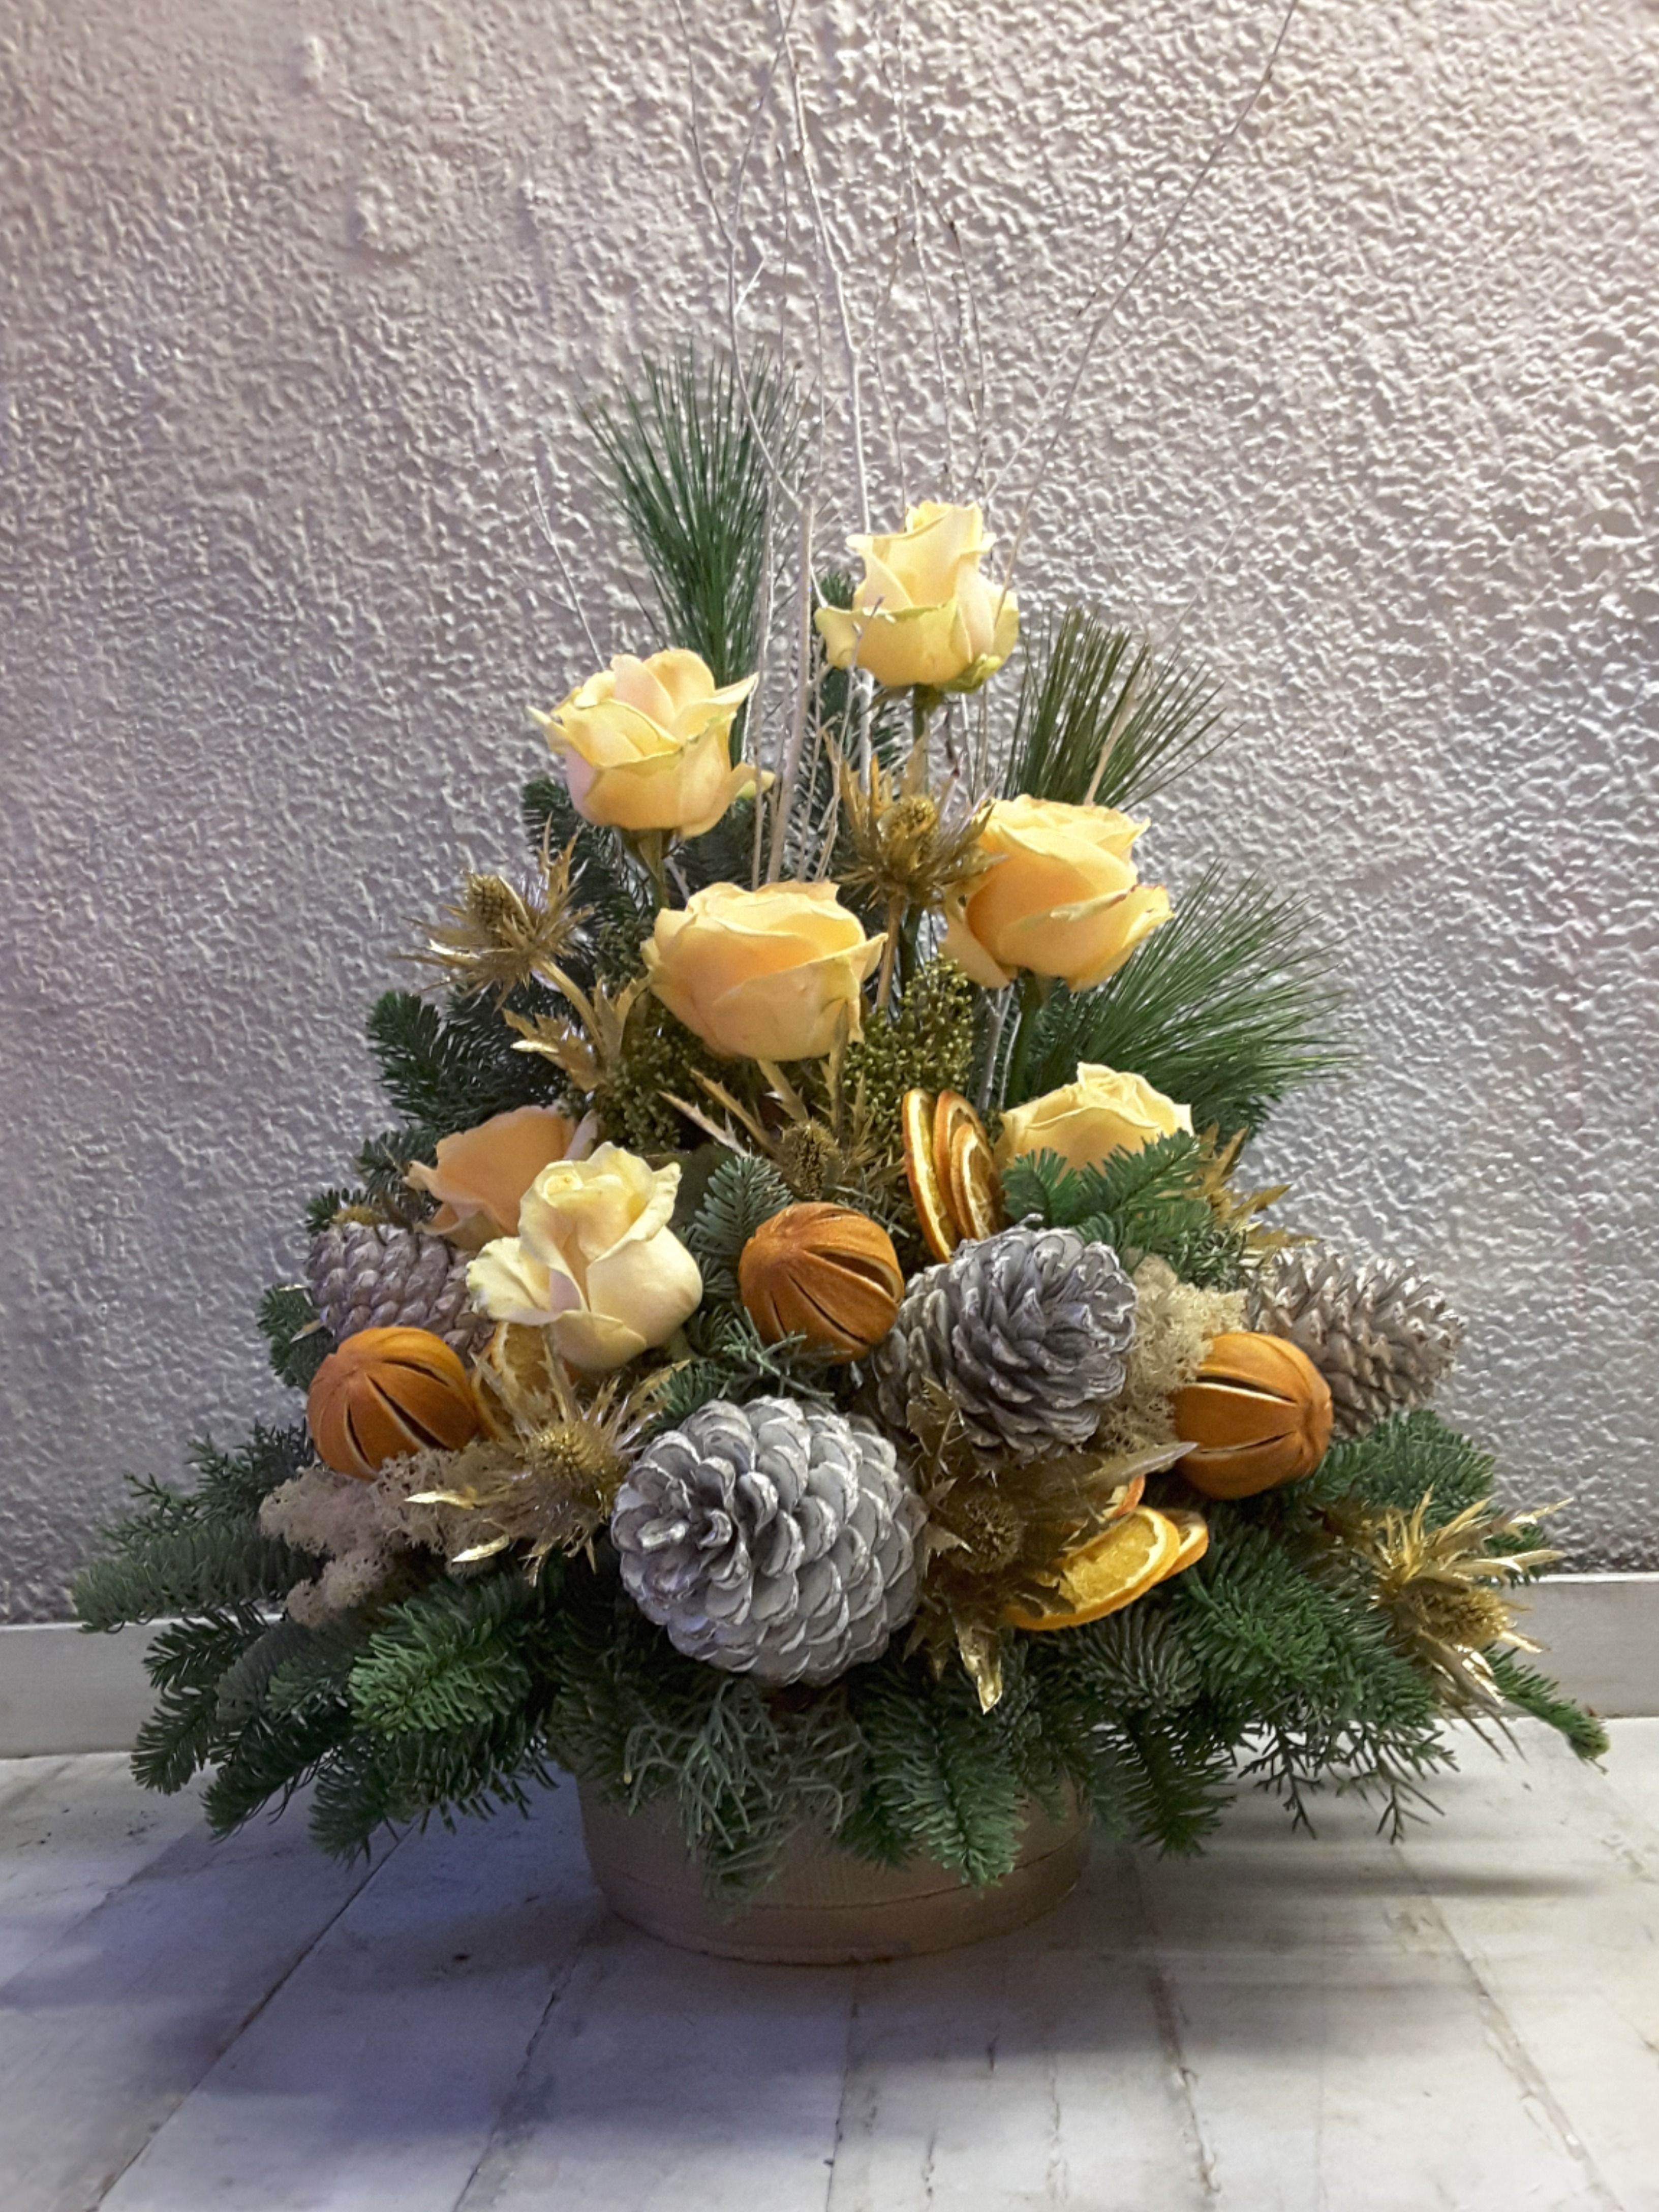 A winter themed arrangement, in a container, of cream